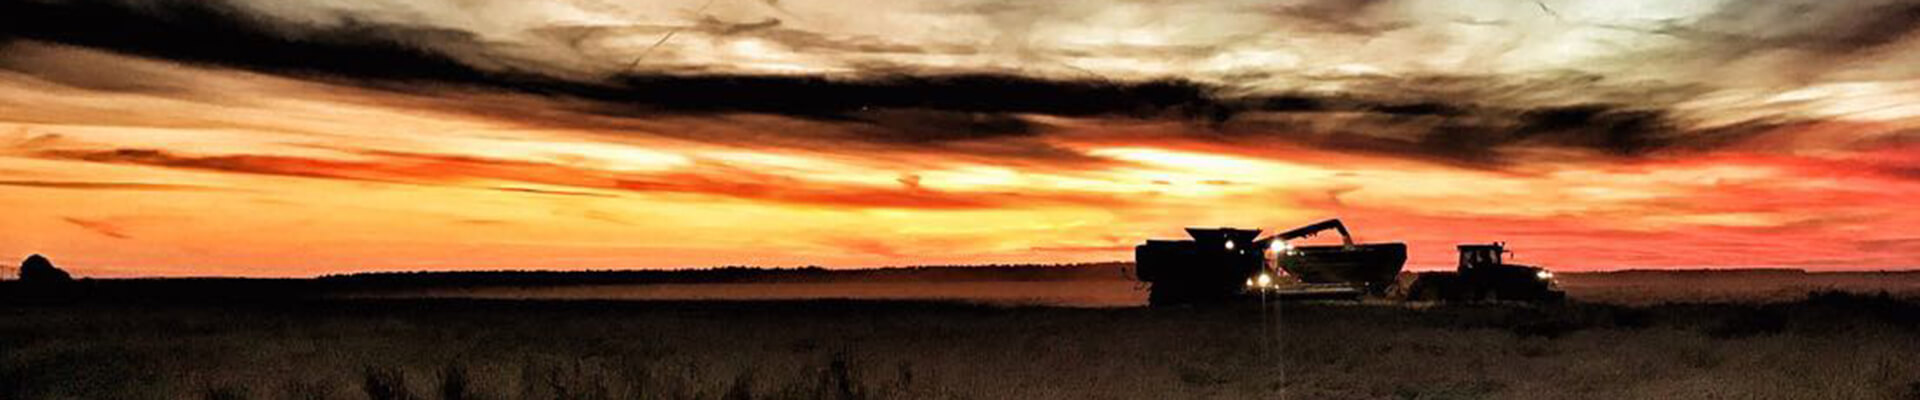 Grain Harvester working in the dusk